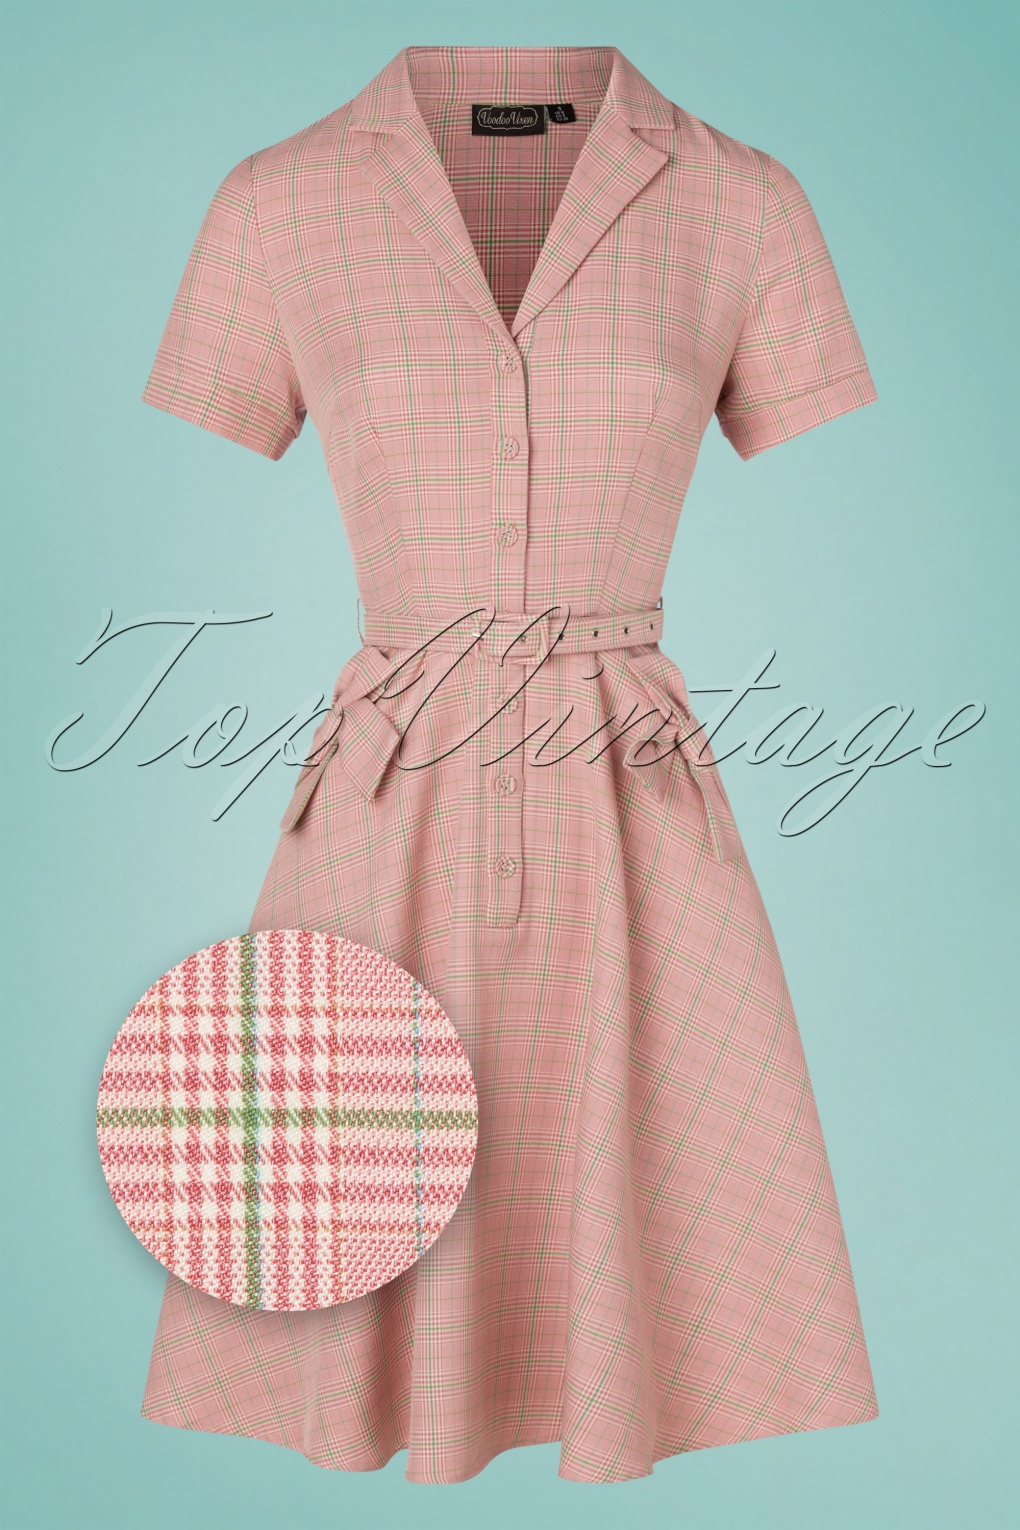 60s Mod Clothing Outfit Ideas 50s Kenzy Plaid Bow Swing Dress in Pink £24.95 AT vintagedancer.com